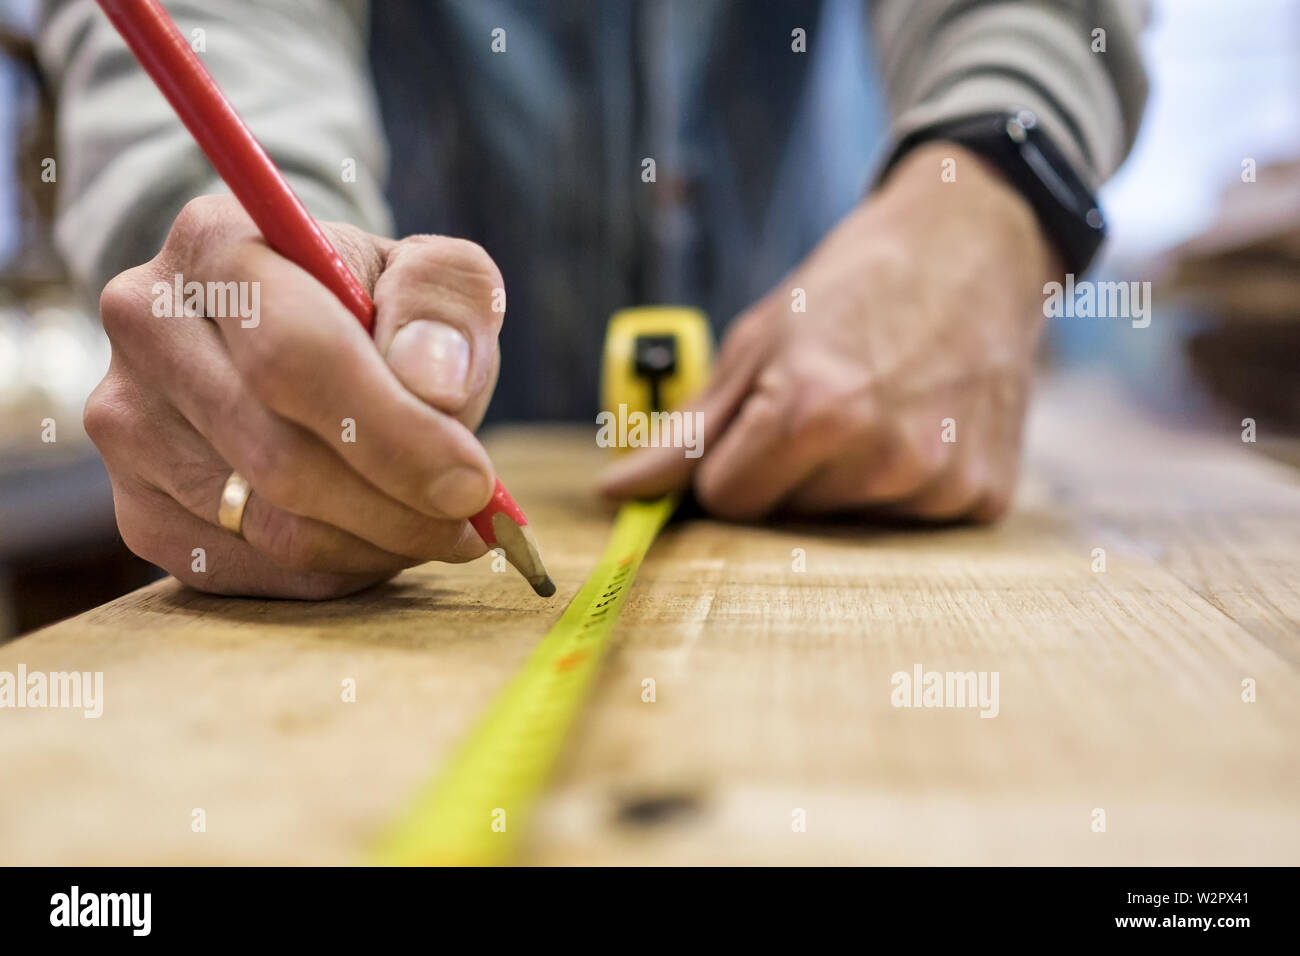 Carpenter measuring and tracing line with a ruler and pencil on wooden timber. - Stock Image